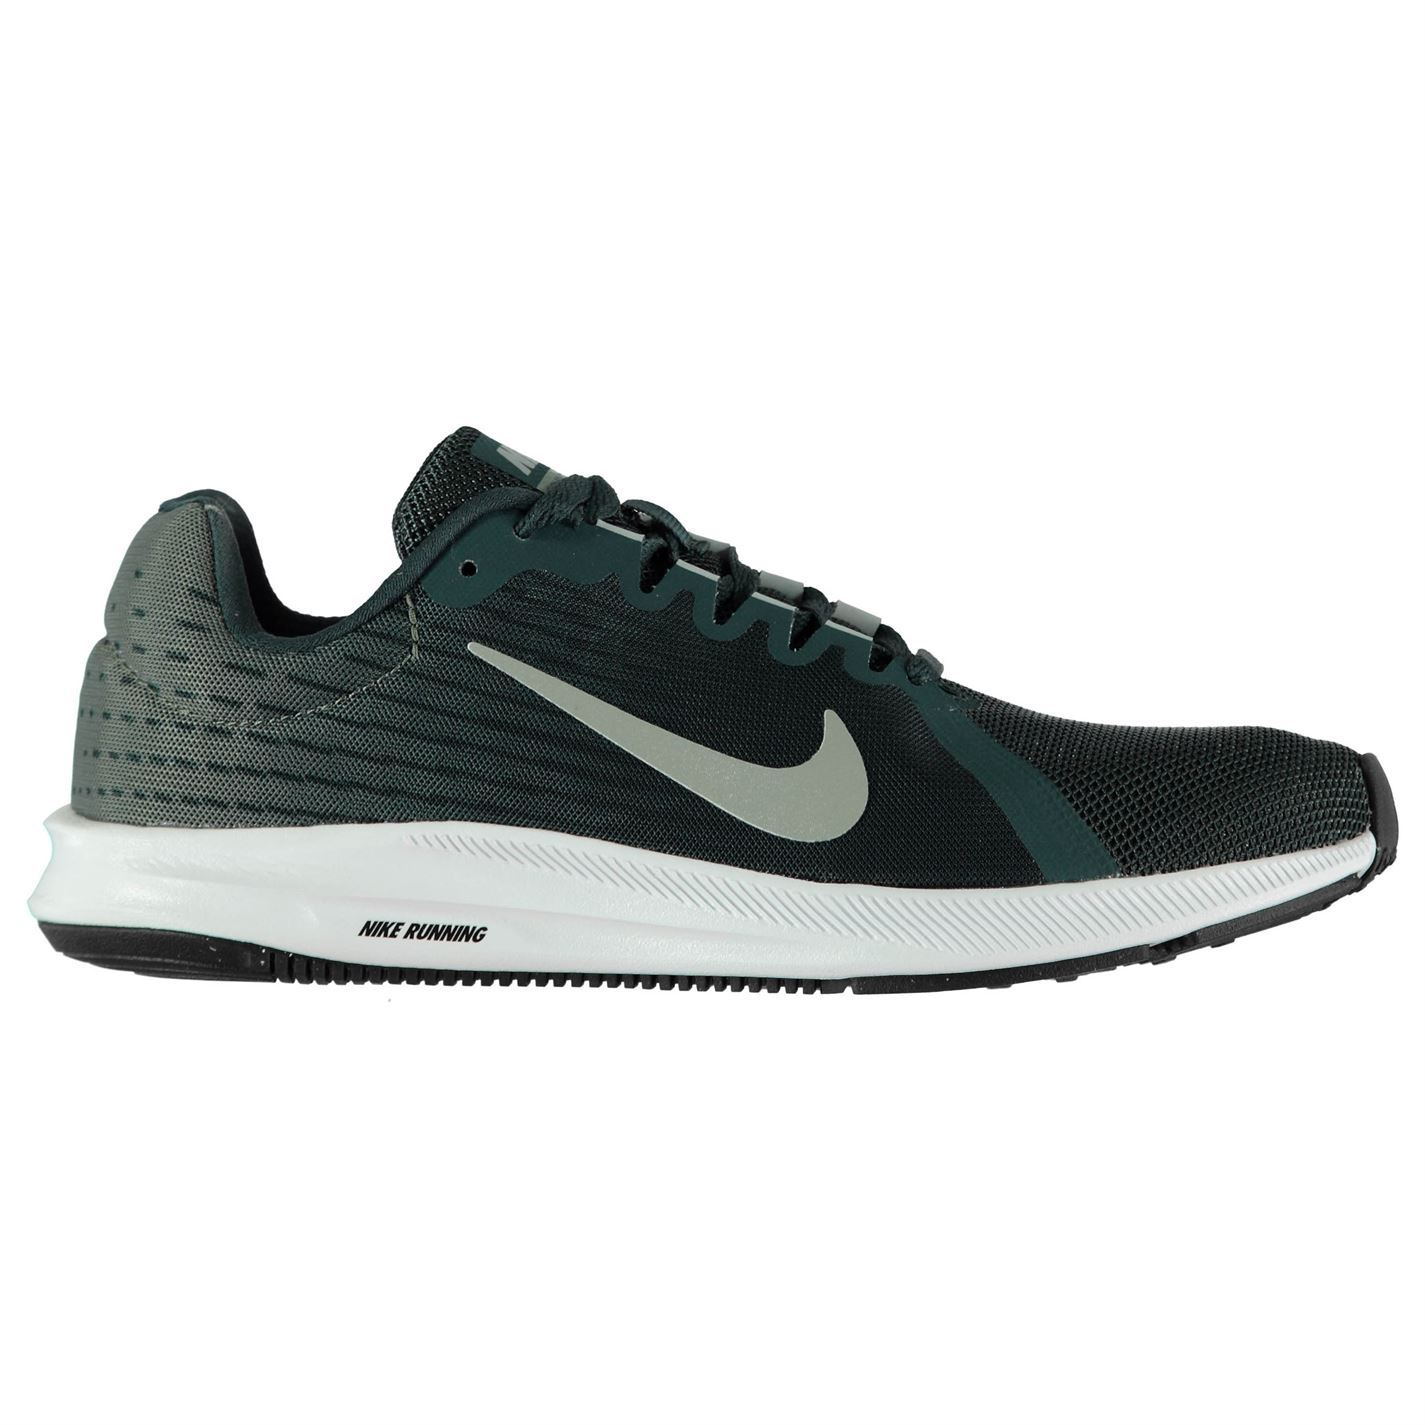 925f76e41dbb ... Nike Downshifter 8 Running Shoes Mens Green Stone Jogging Trainers  Sneakers ...